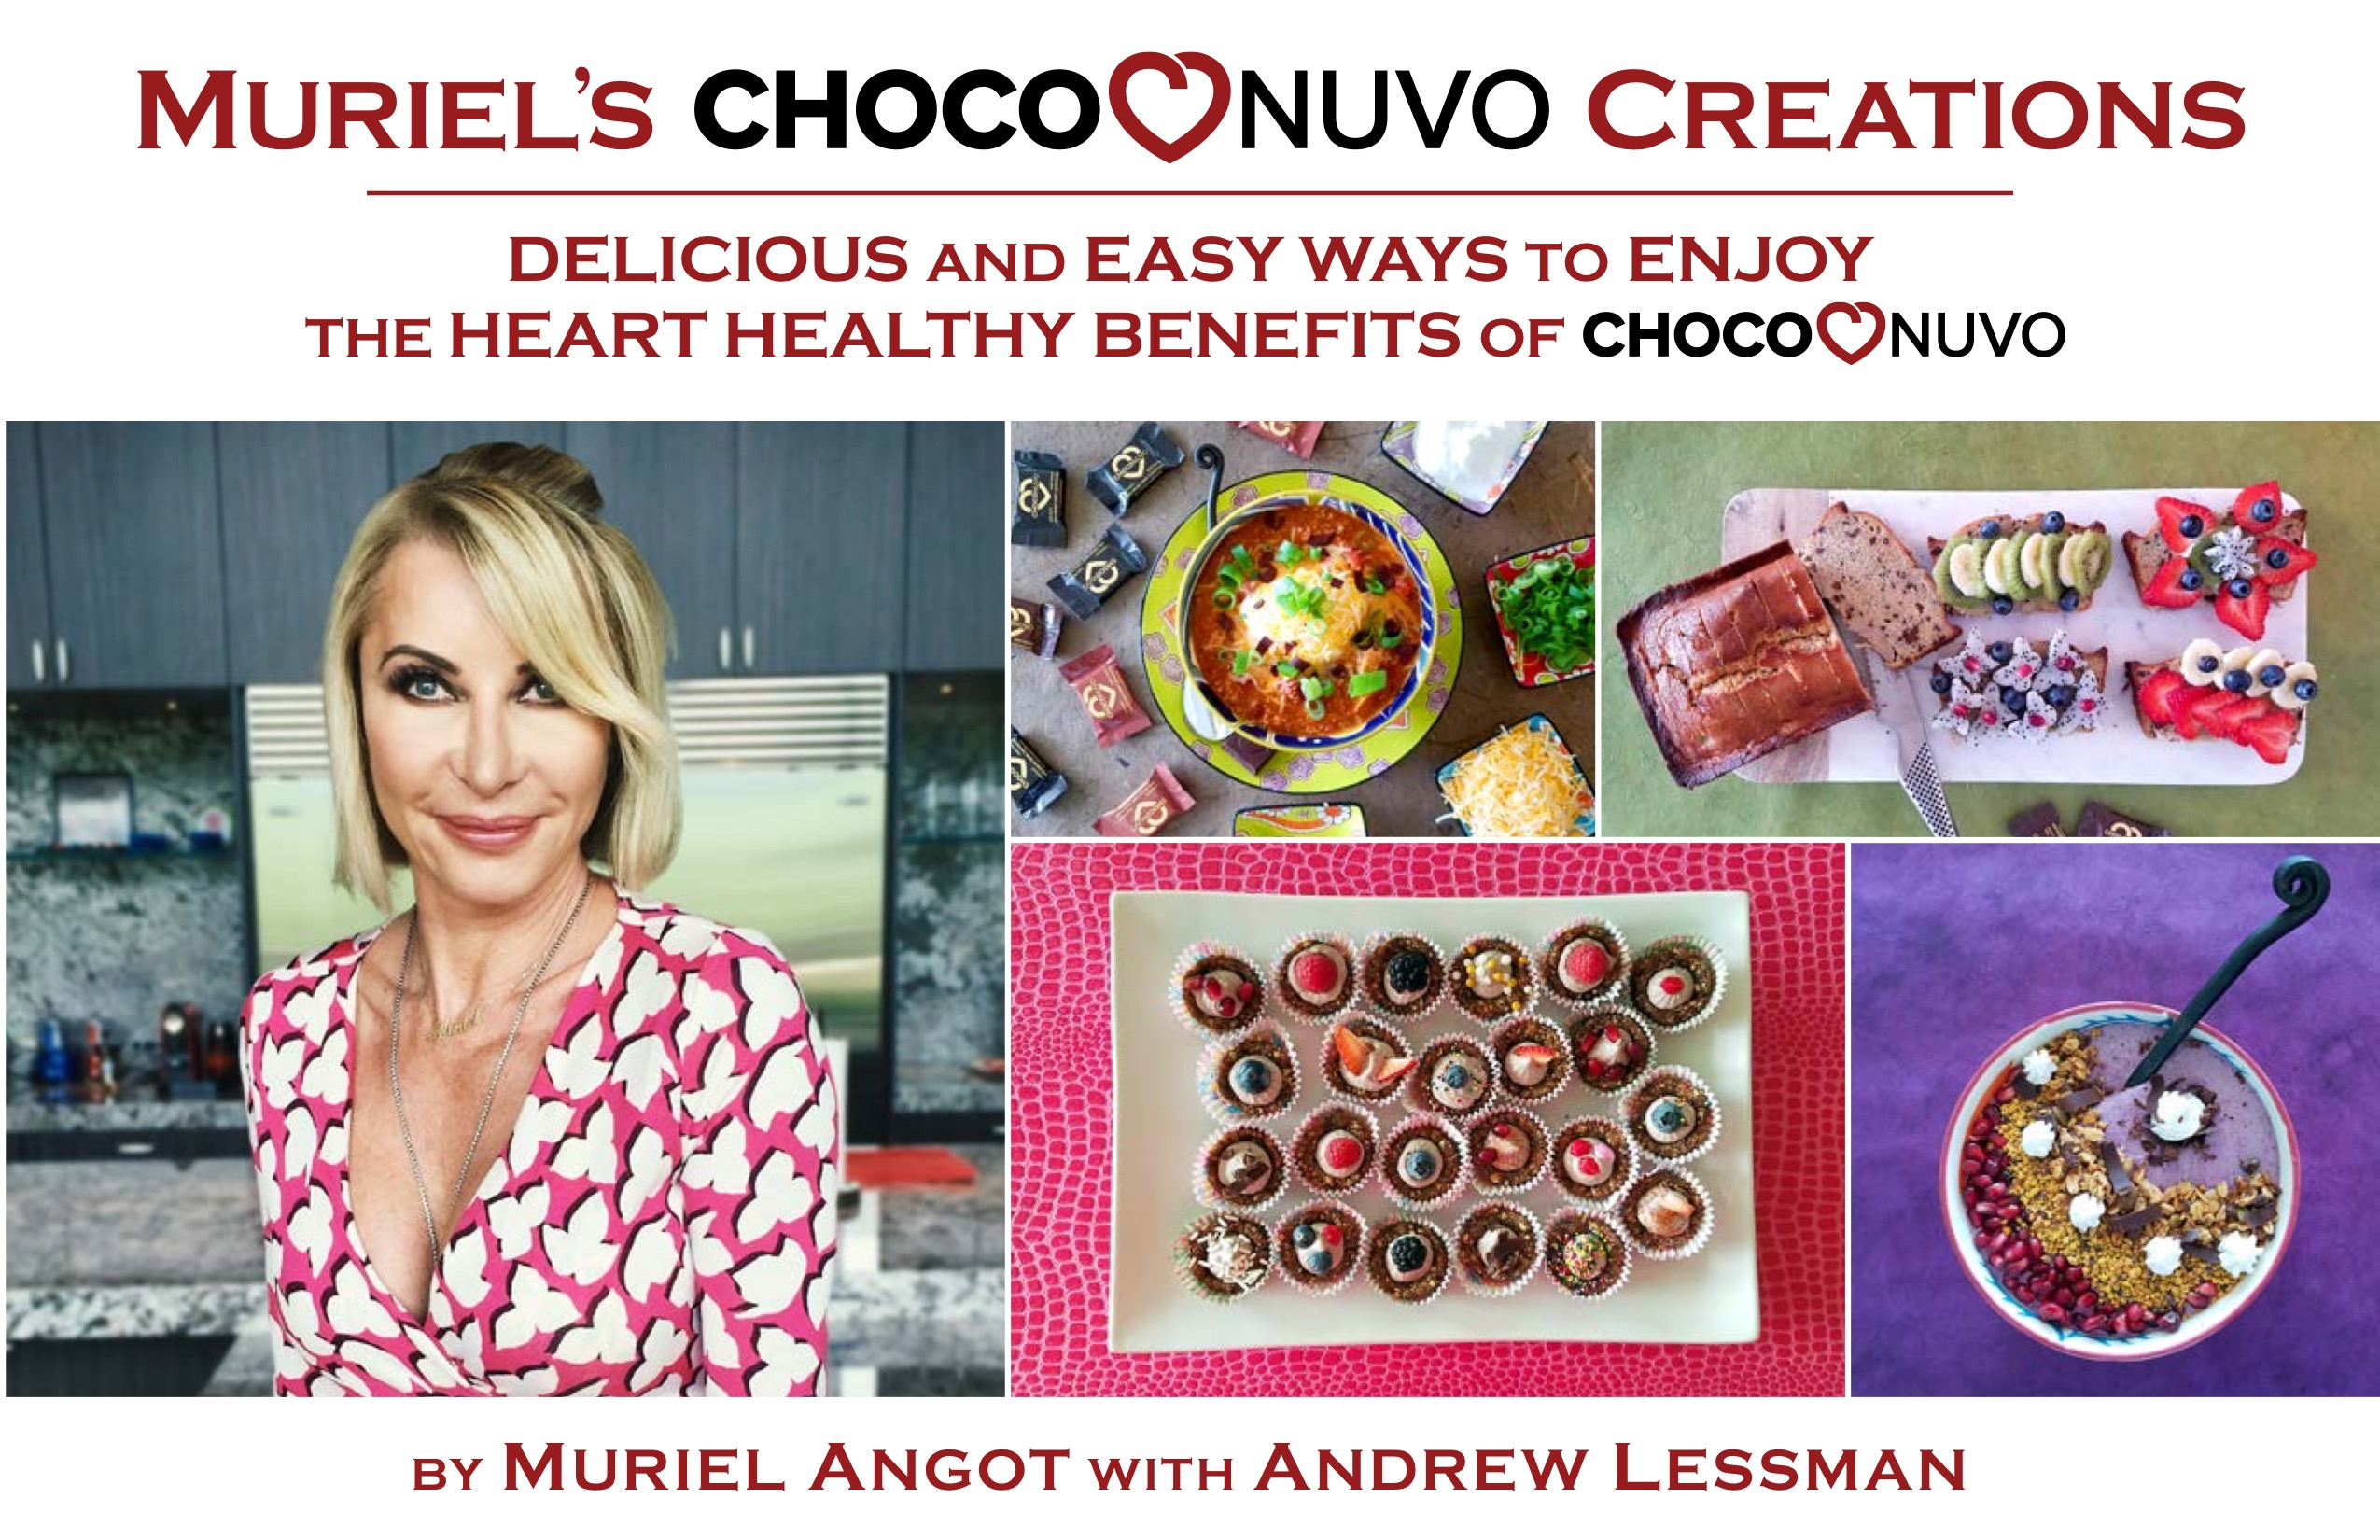 Muriel-s-ChocoNuvo-Creations-Cookbook